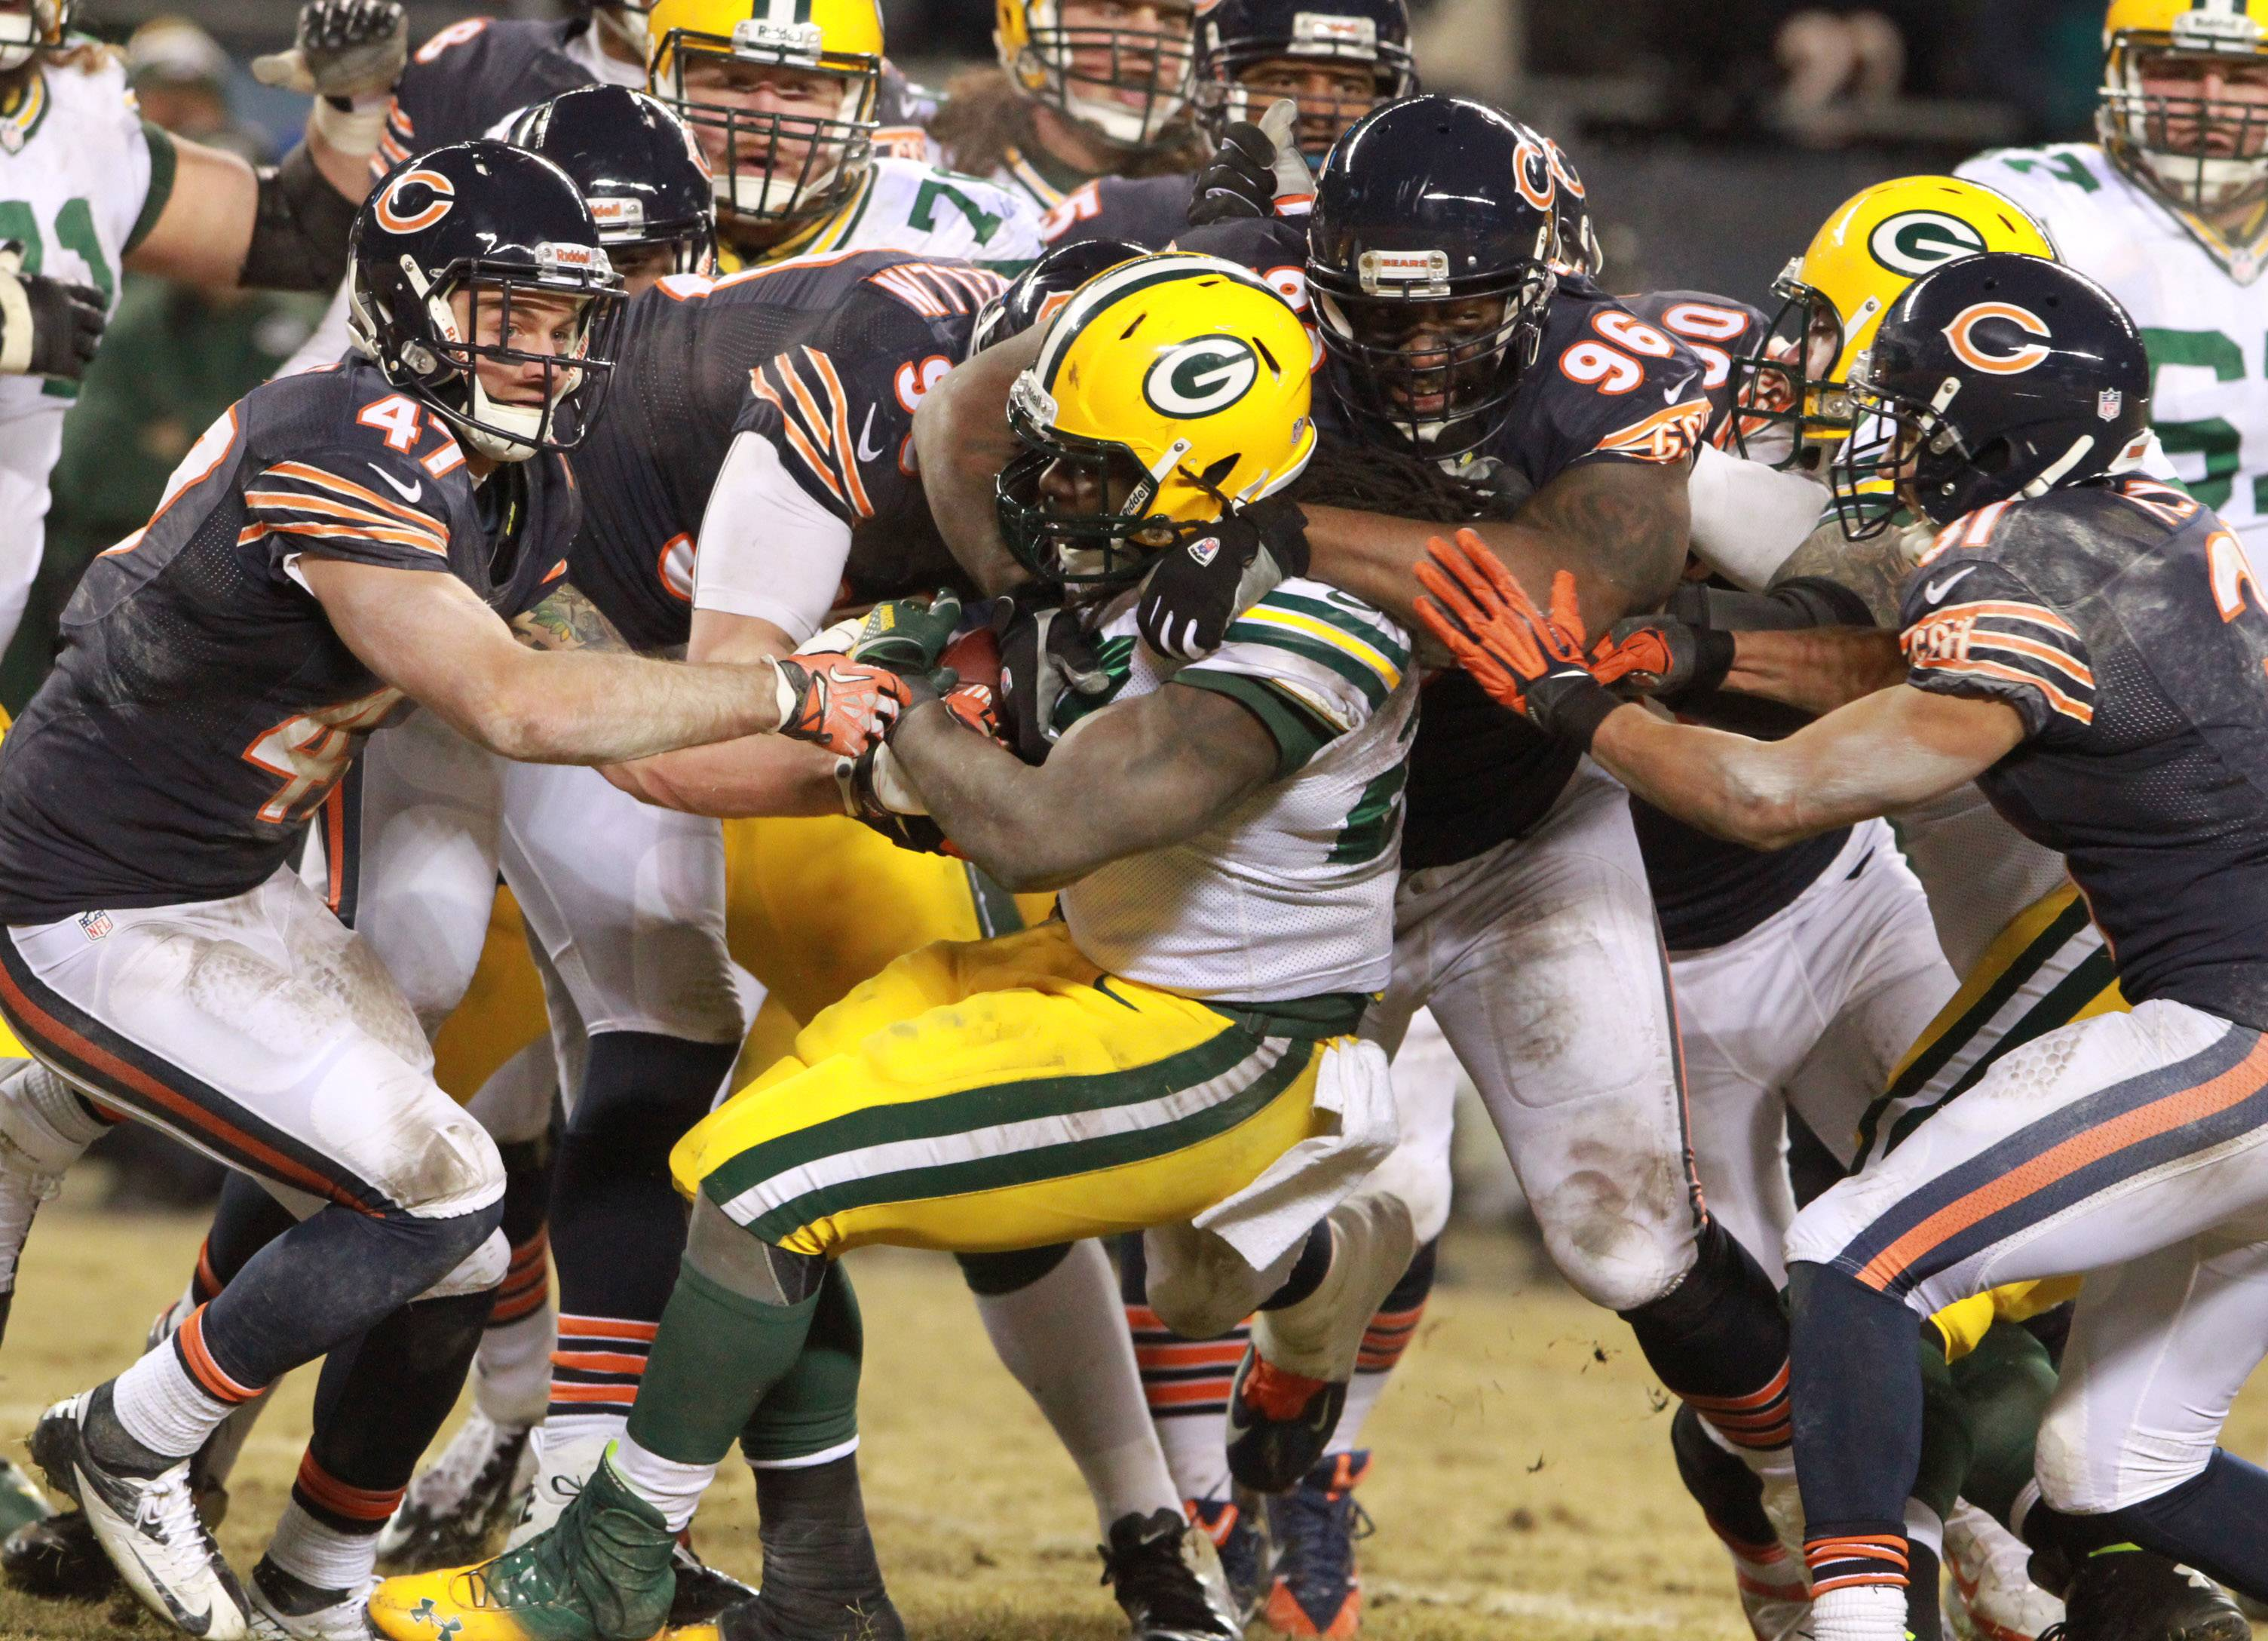 Bears defensive lineman Jeremiah Ratliff (96) helps bring down Packers running back Eddie Lacy in the 2013 season finale.